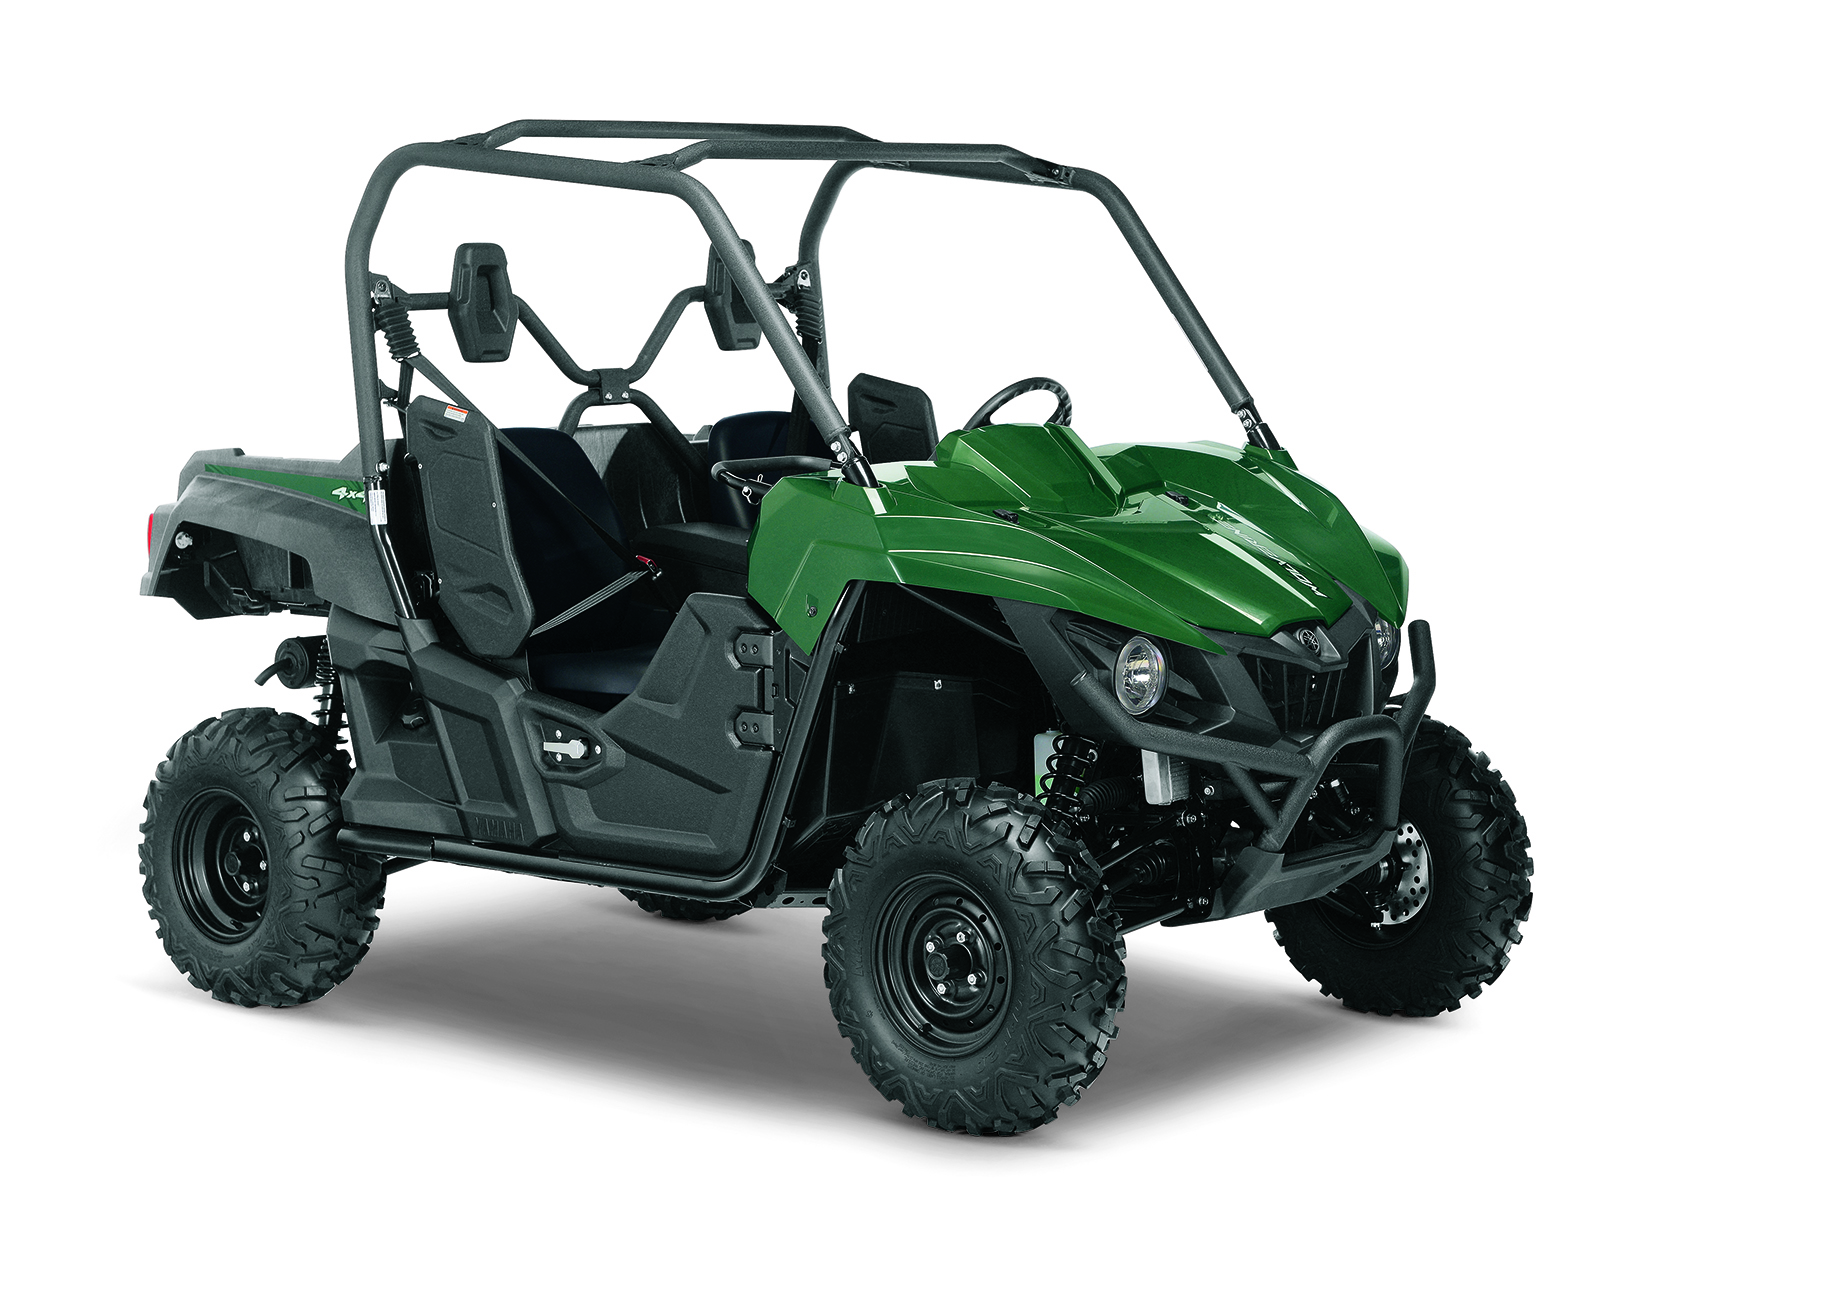 Yamaha Announces ALL NEW 2016 ATV and Side by Side Models